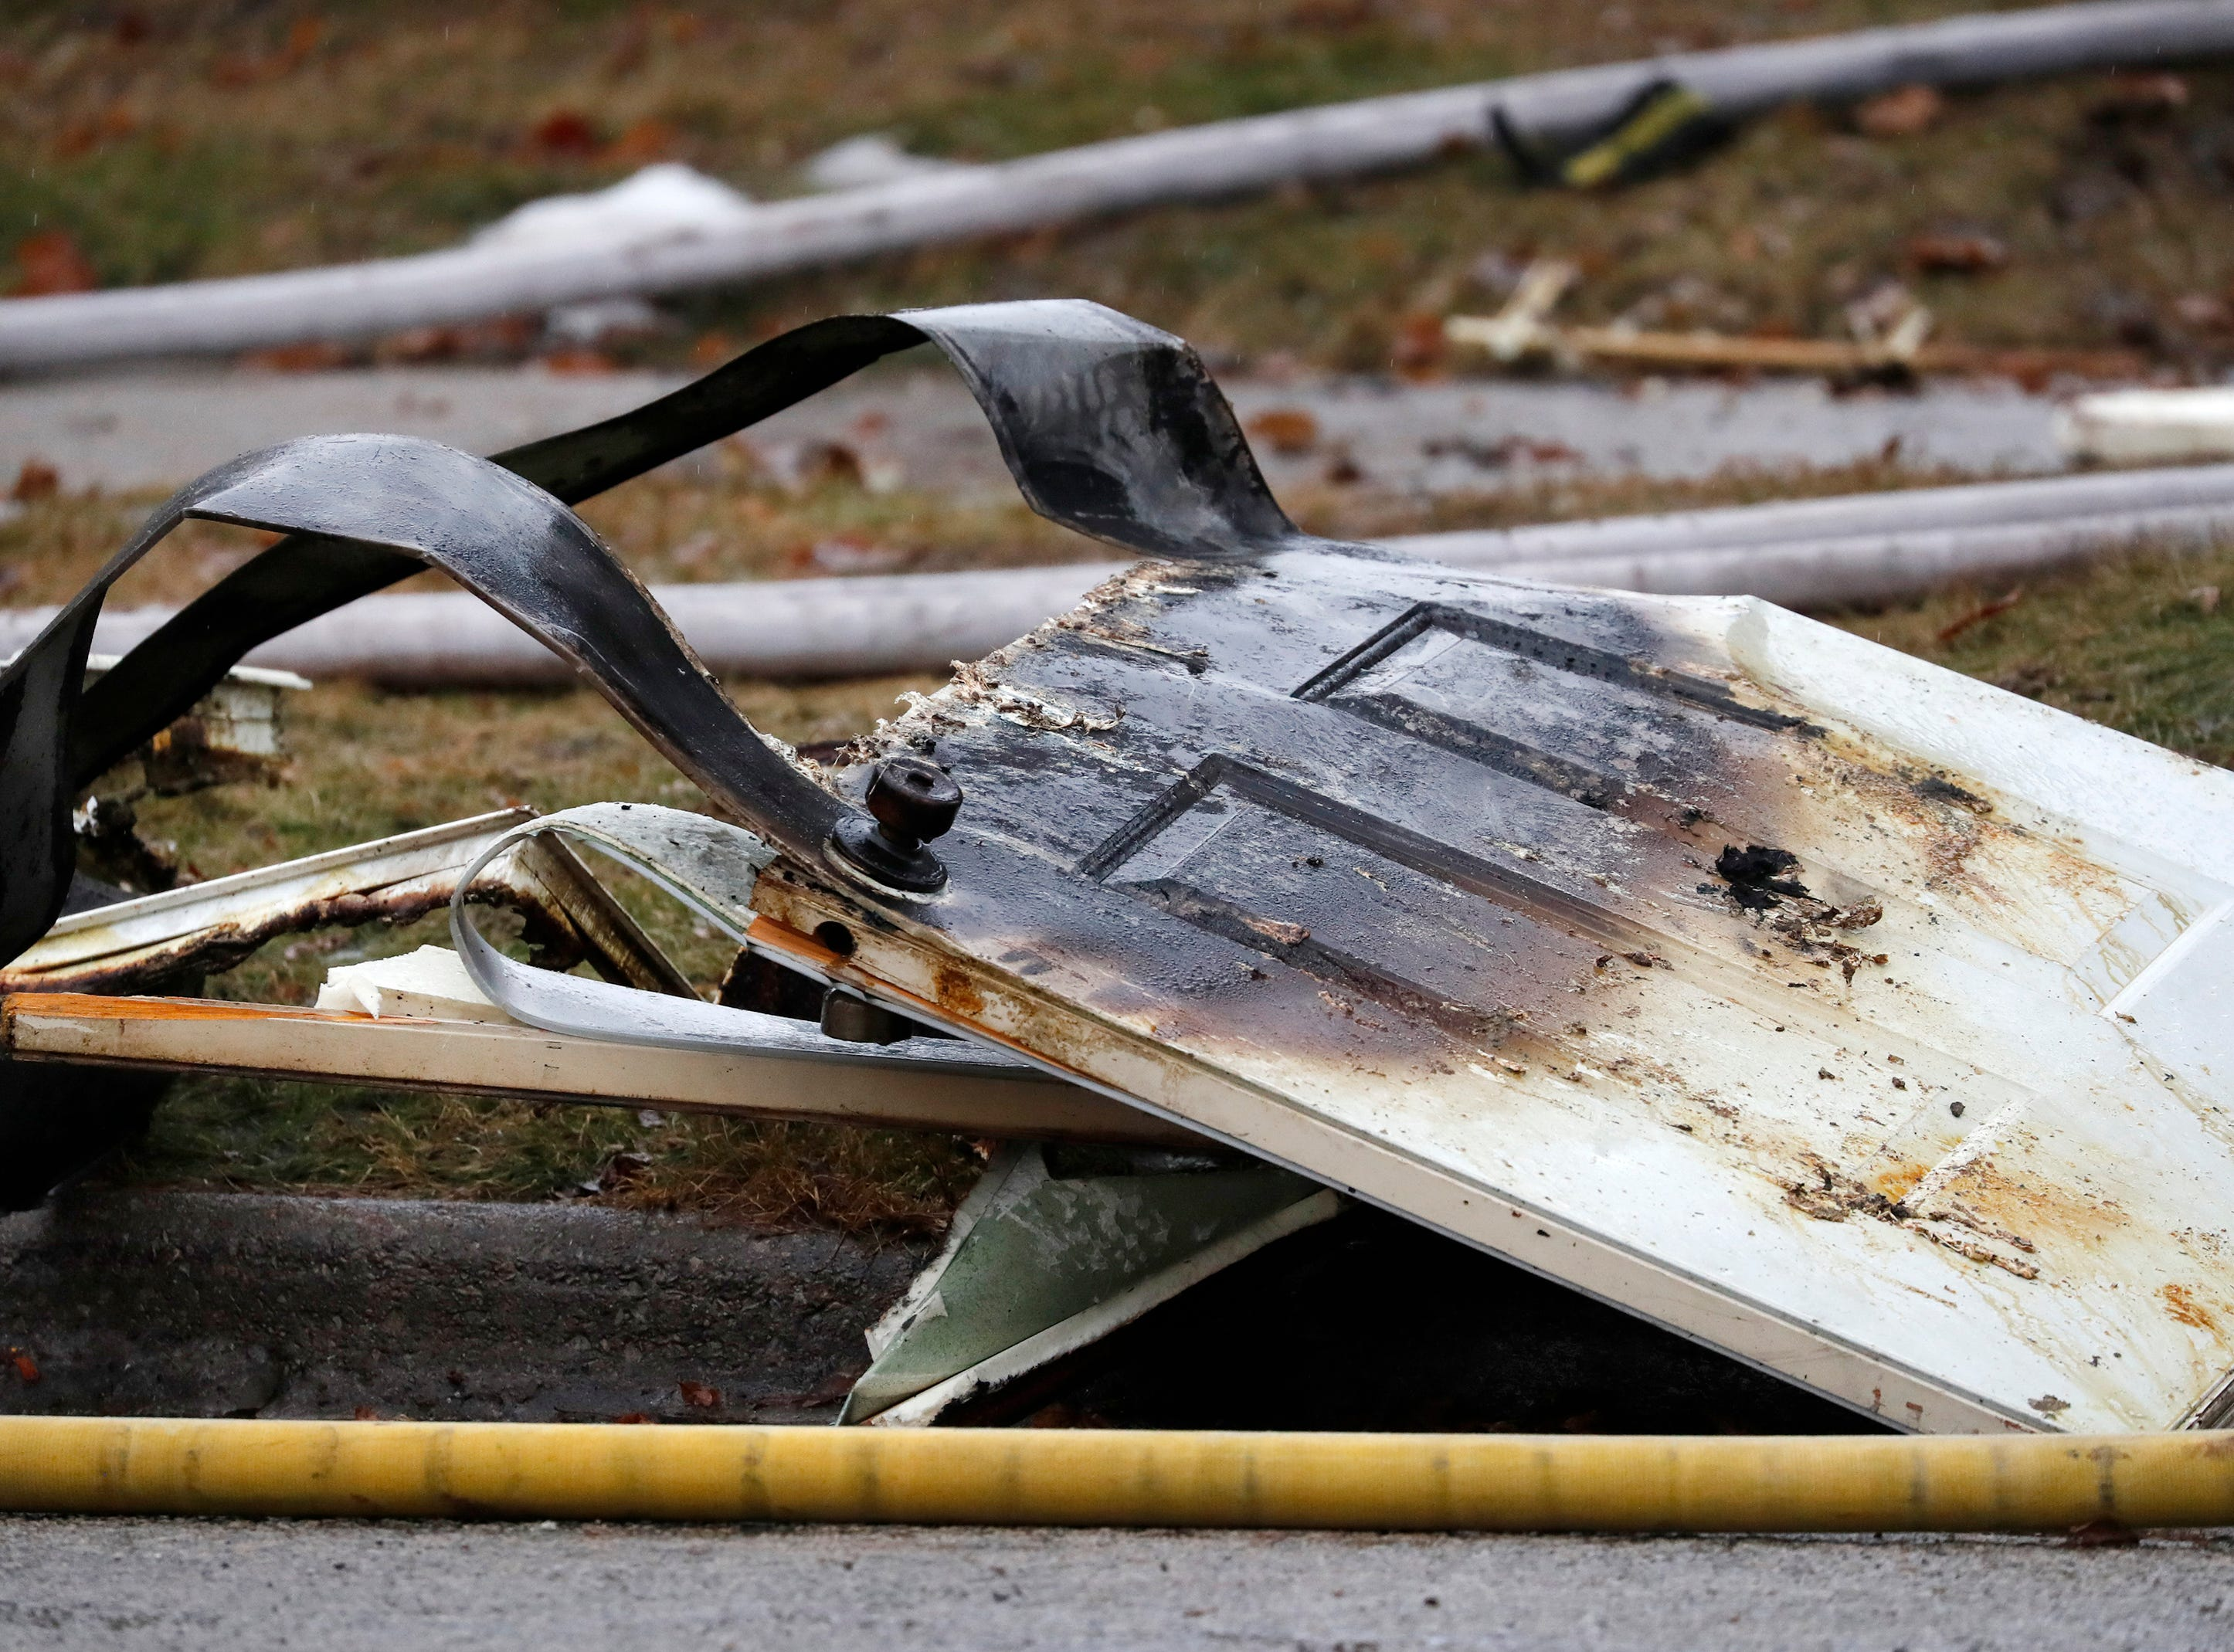 A destroyed door on the scene of a structure of a fire on West 10th Street Thursday, Dec. 27, 2018, Kaukauna, Wis.Danny Damiani/USA TODAY NETWORK-Wisconsin